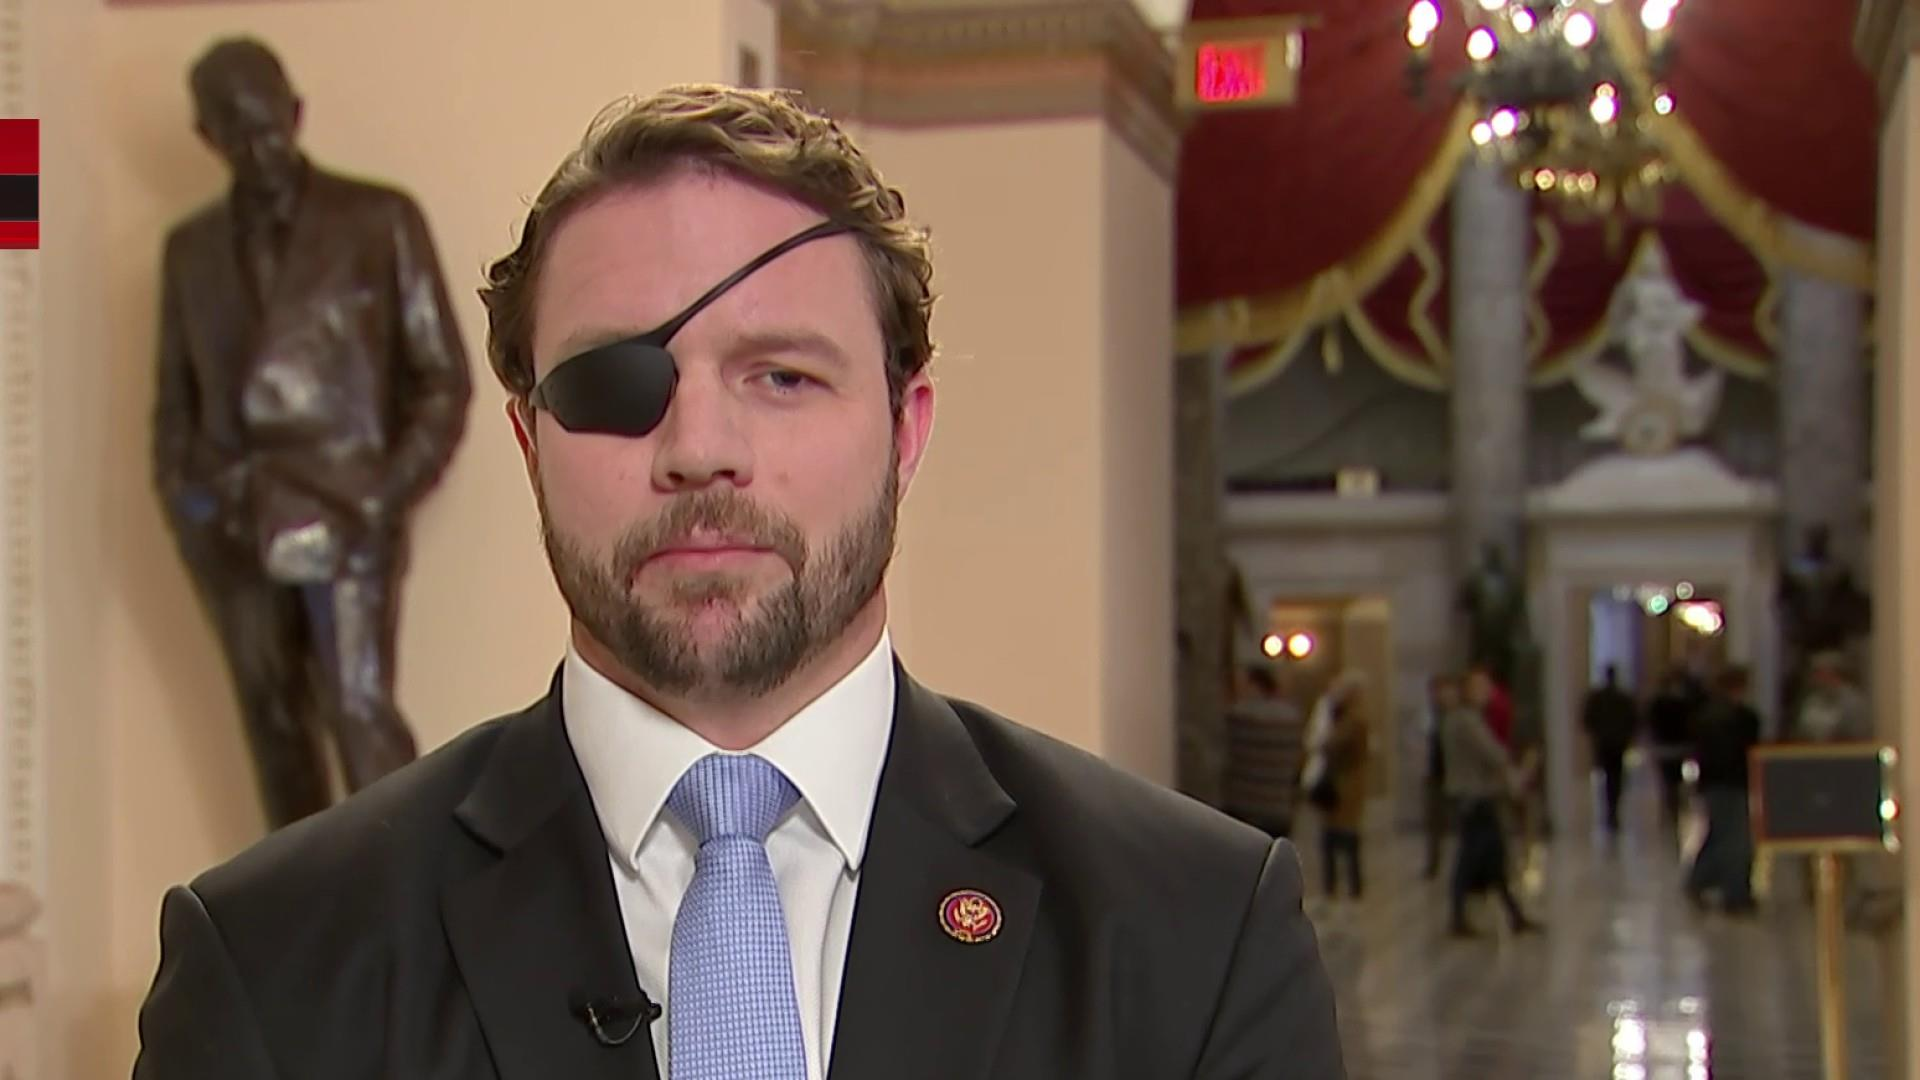 Rep. Crenshaw: Rightful questions have been raised, answered